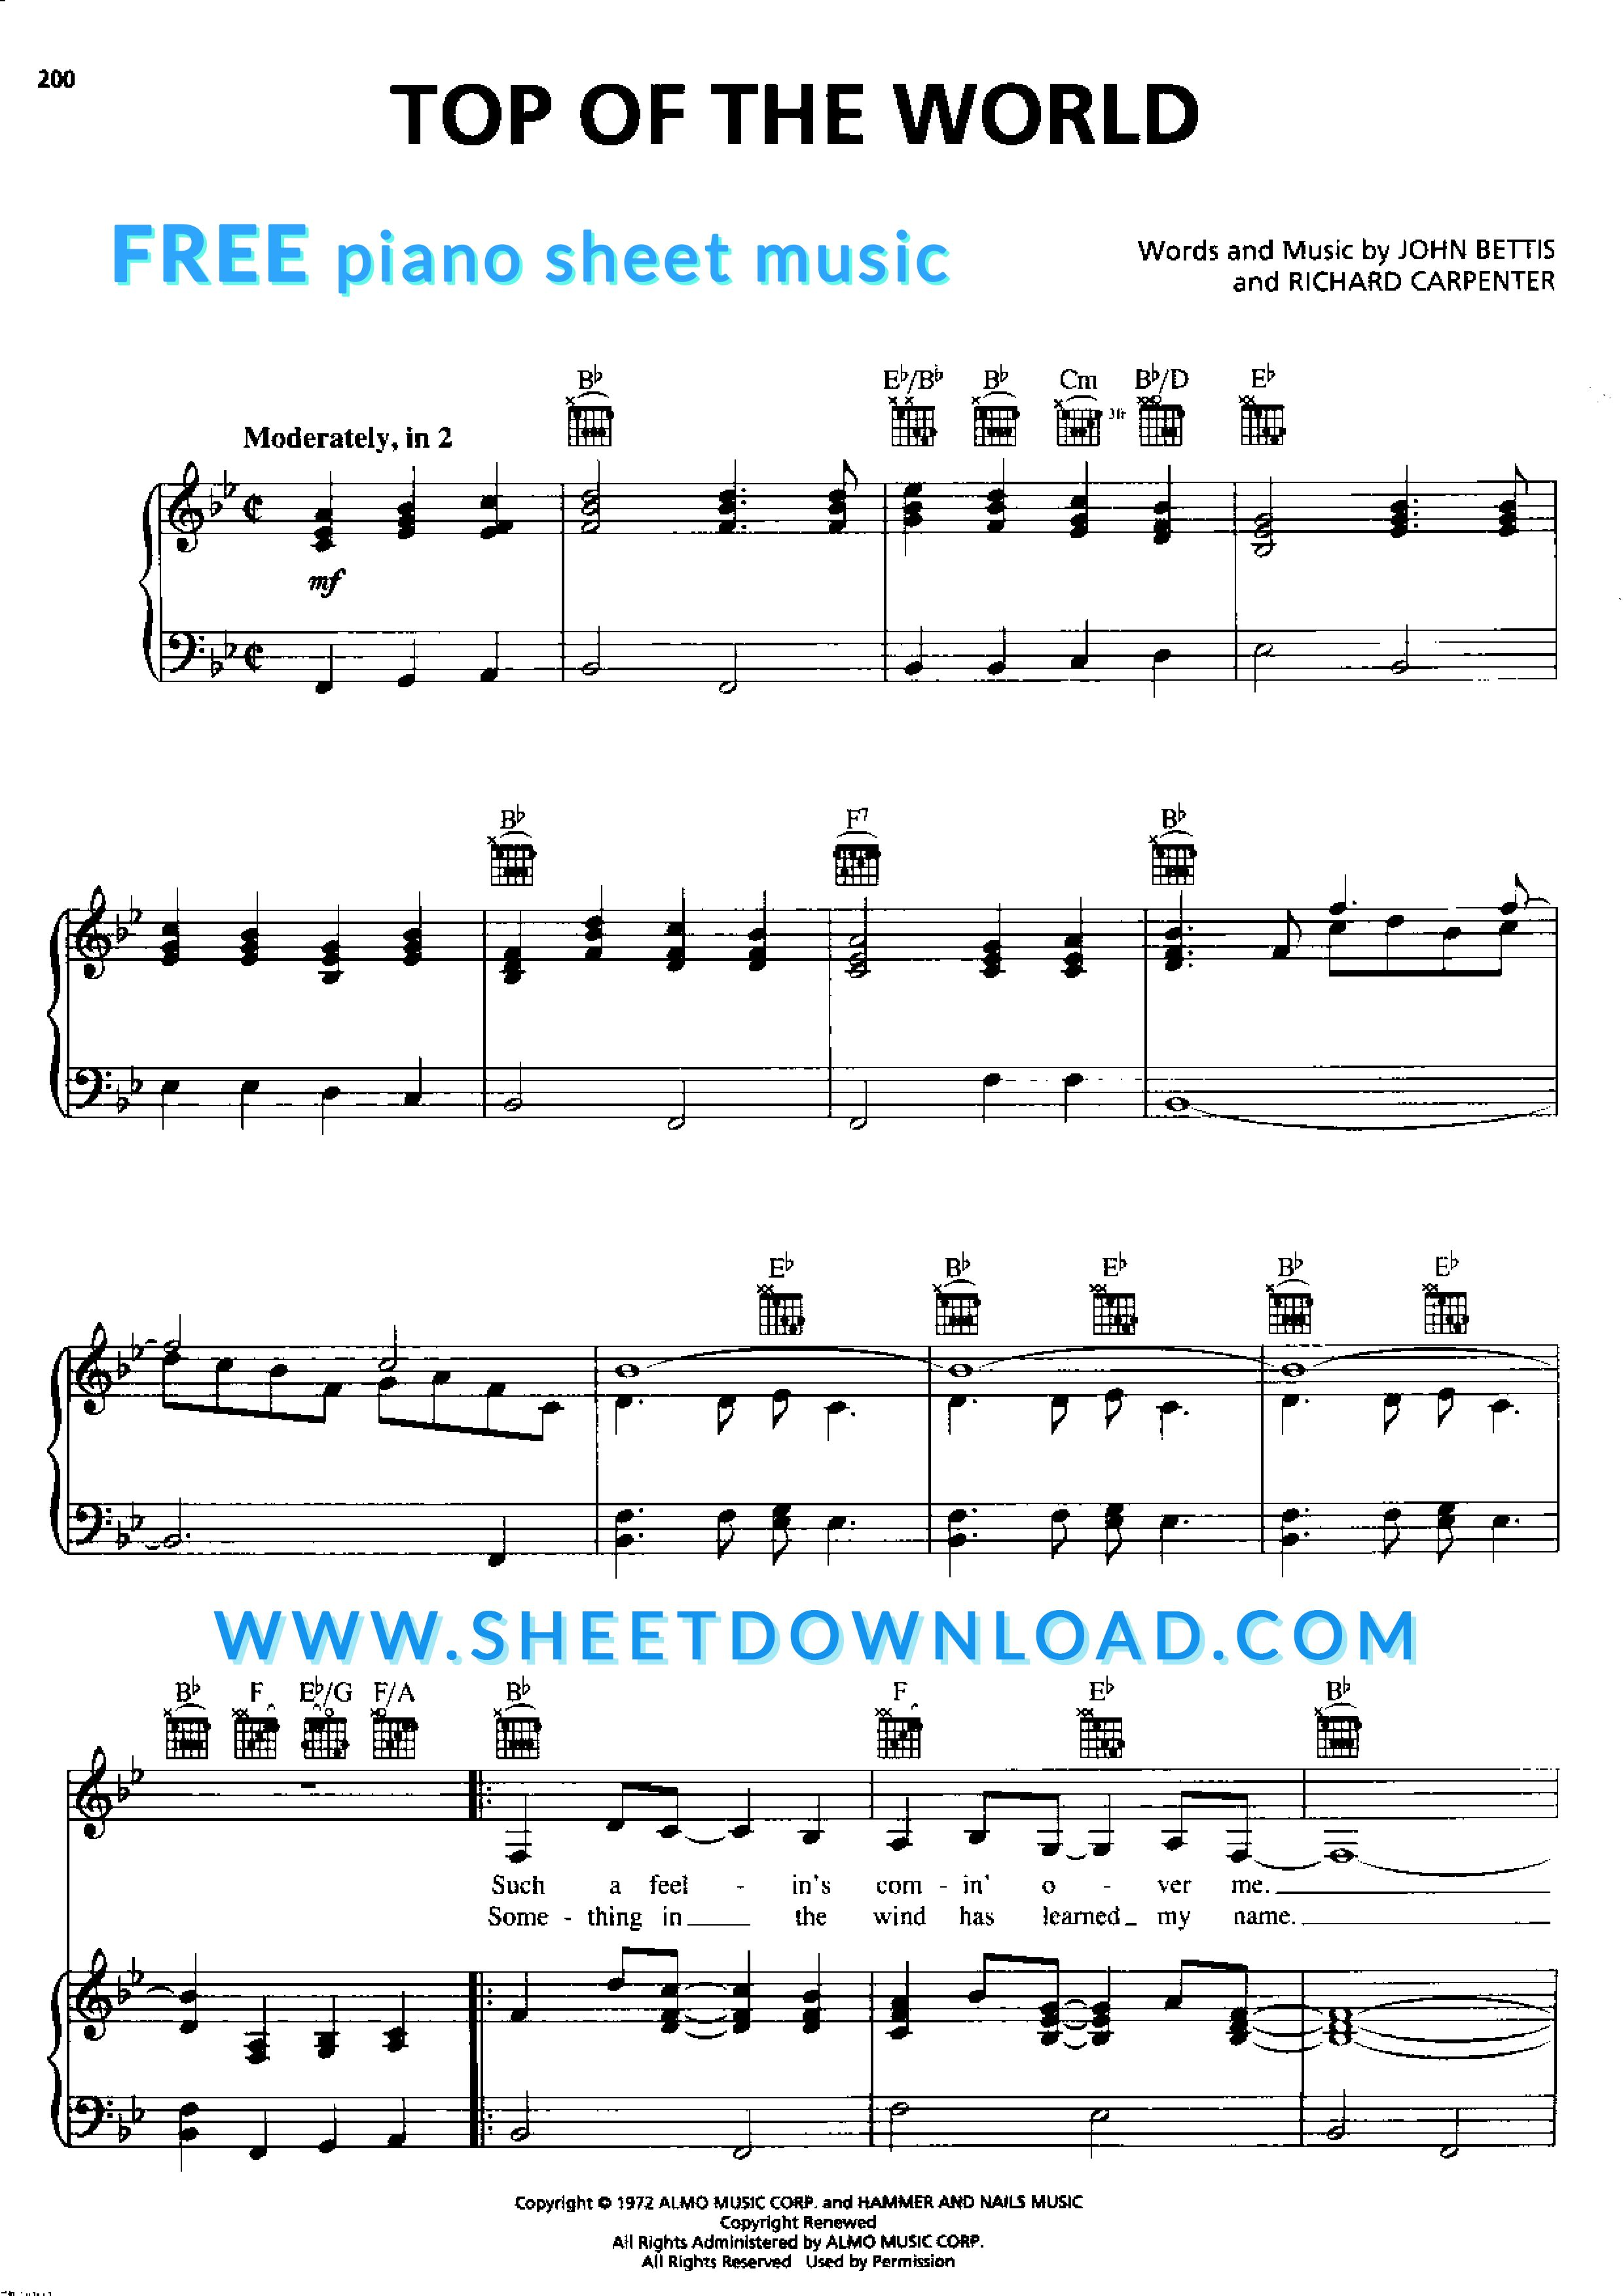 View Download And Print Top Of The World Piano Sheet Music By The